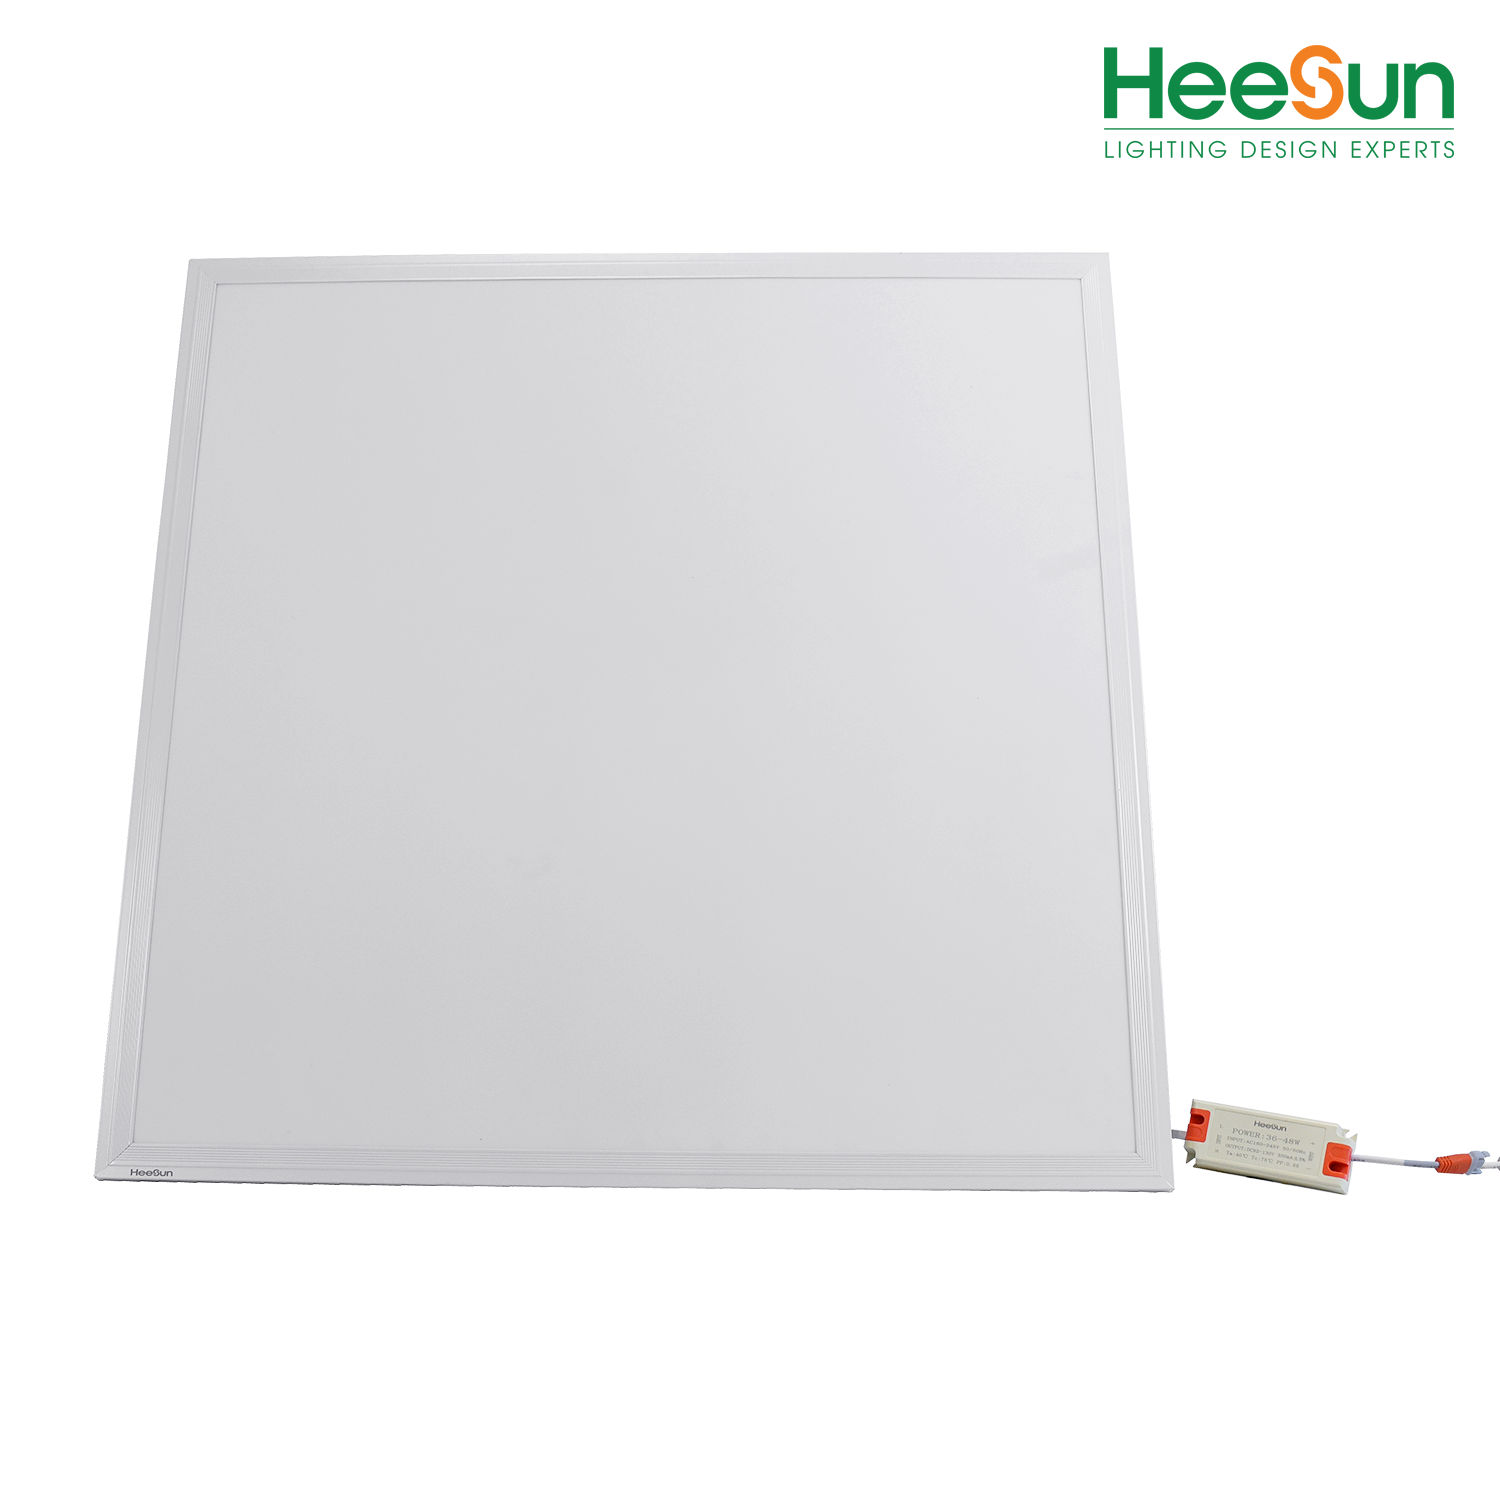 Đèn LED panel tấm dòng Backlight HS-PBL45